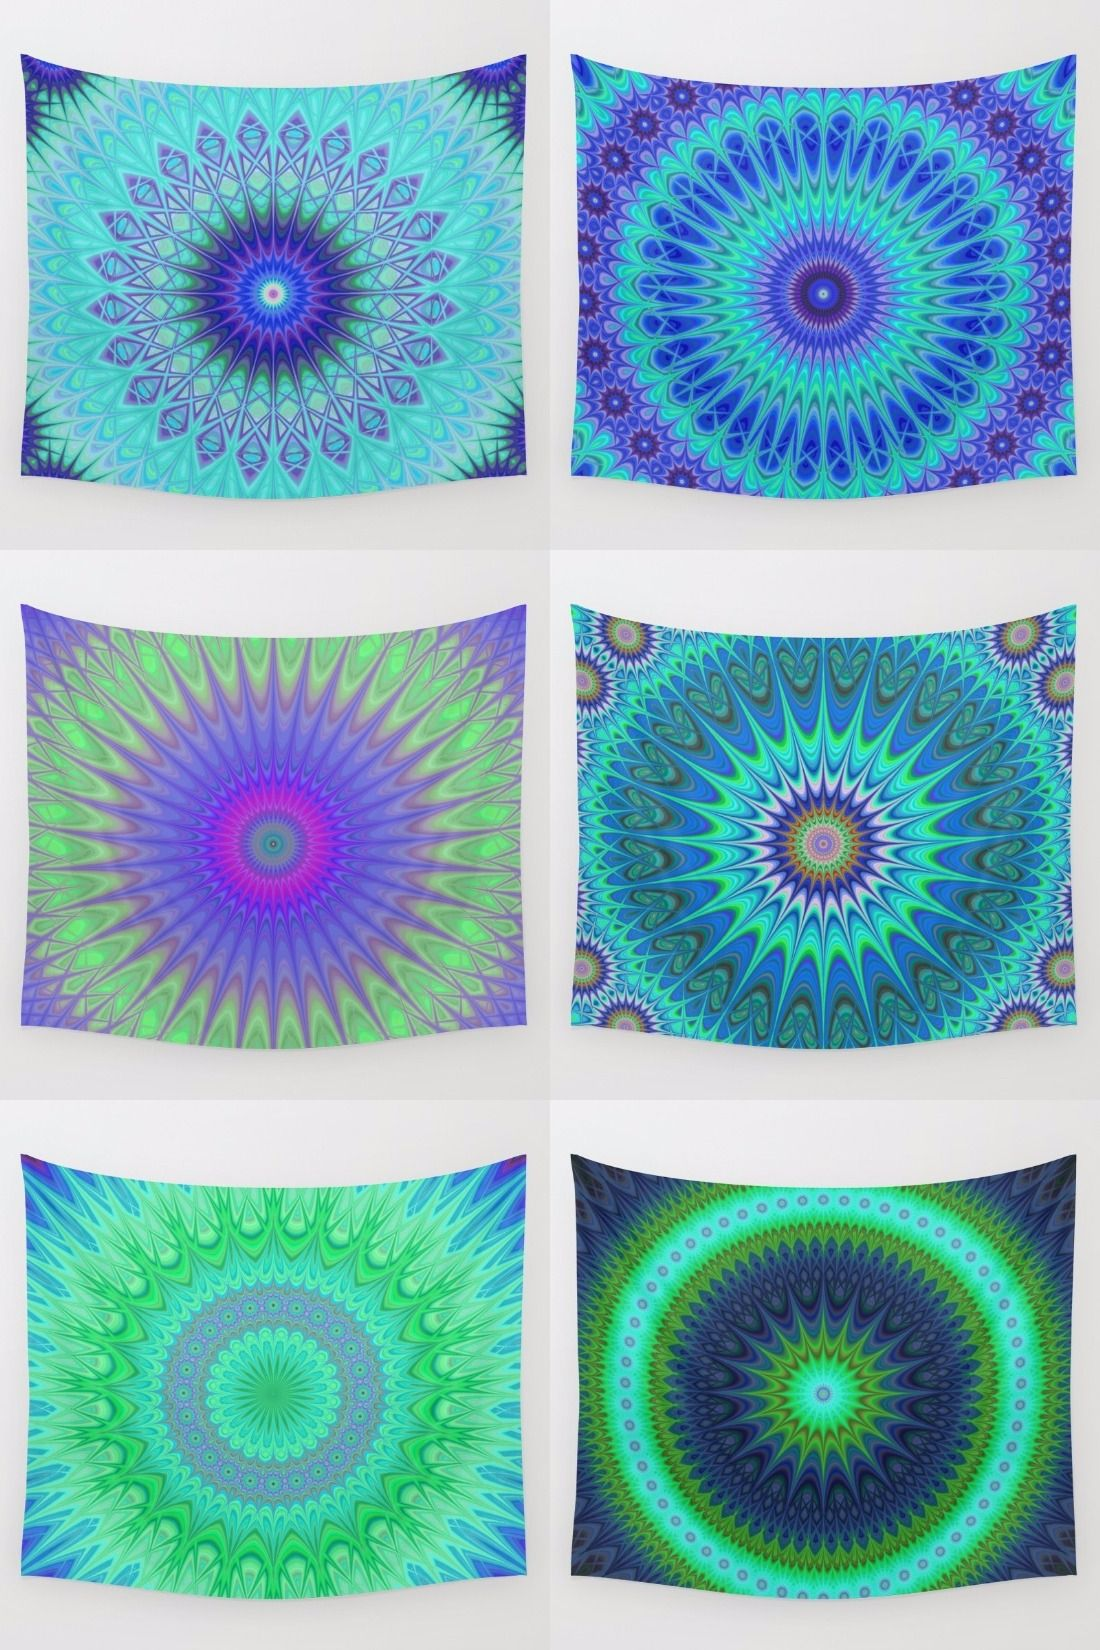 Cold - winter mandala wall tapestry collection. Mandala - boho chic - hippie - indian - kaleidoscope tapestries - wall hangings.